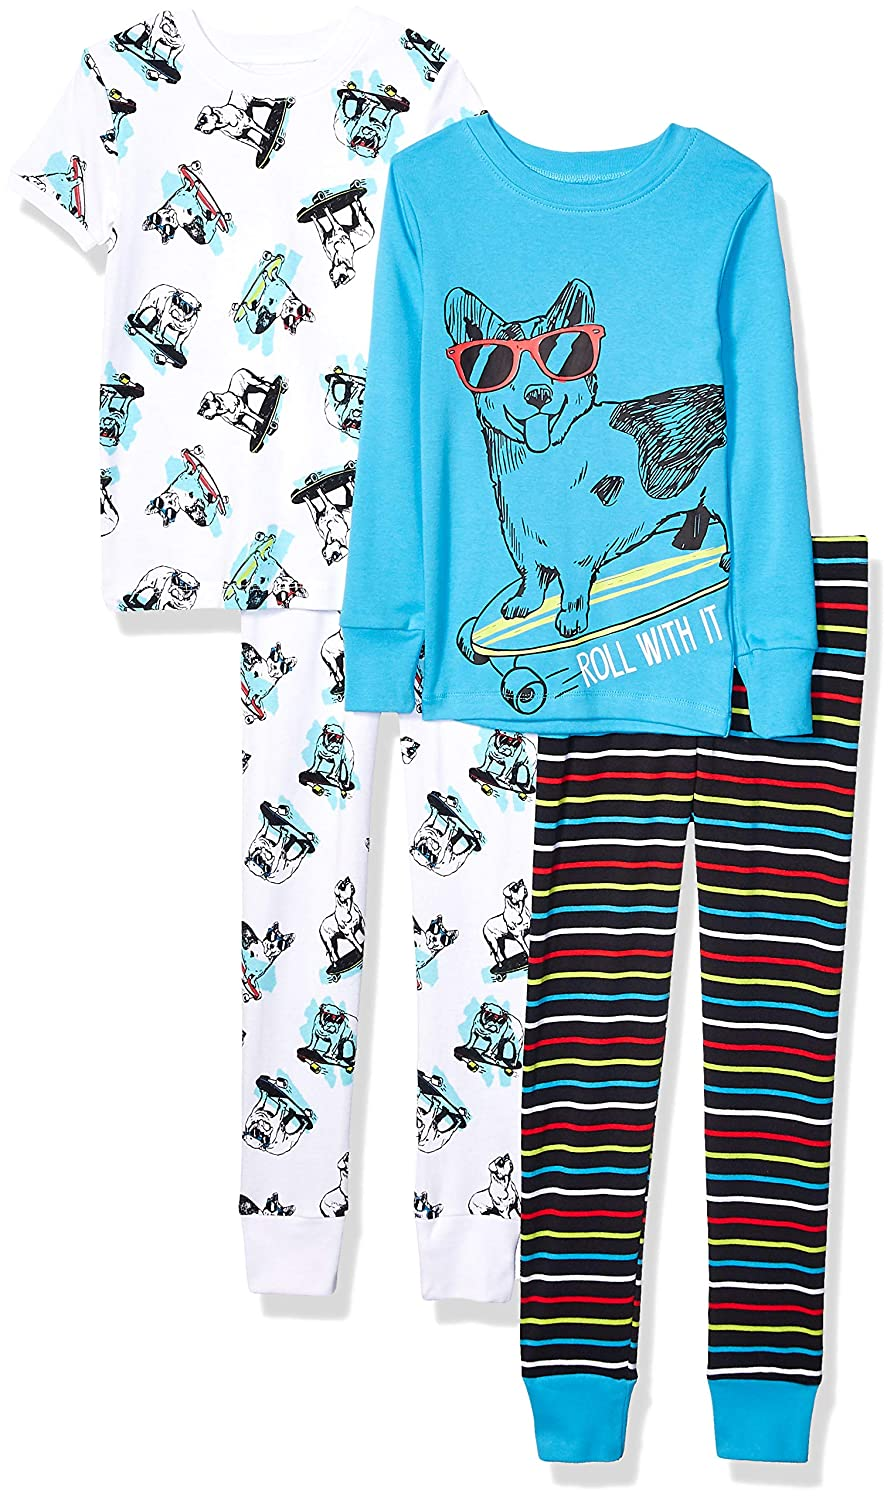 Marke Spotted Zebra Unisex Kinder 4-Piece Snug-fit Cotton Pajama Set